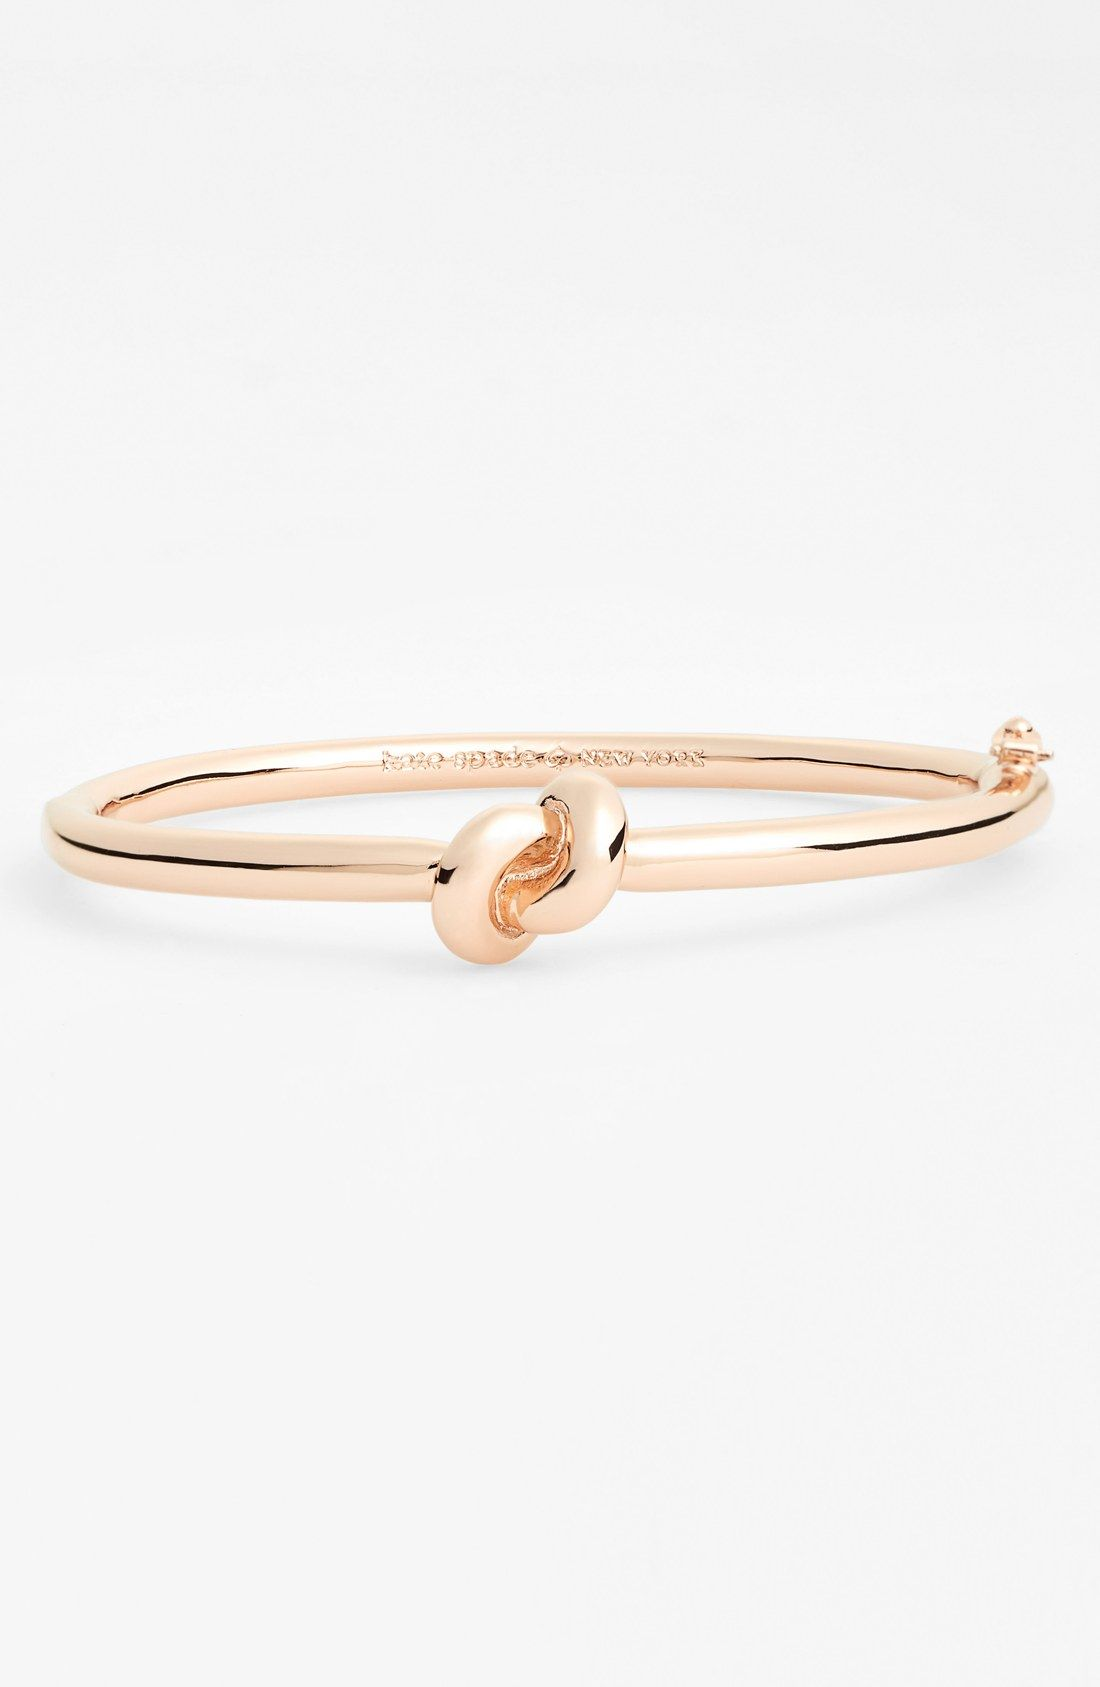 Sailors knotu bangle sailor bangle and nordstrom